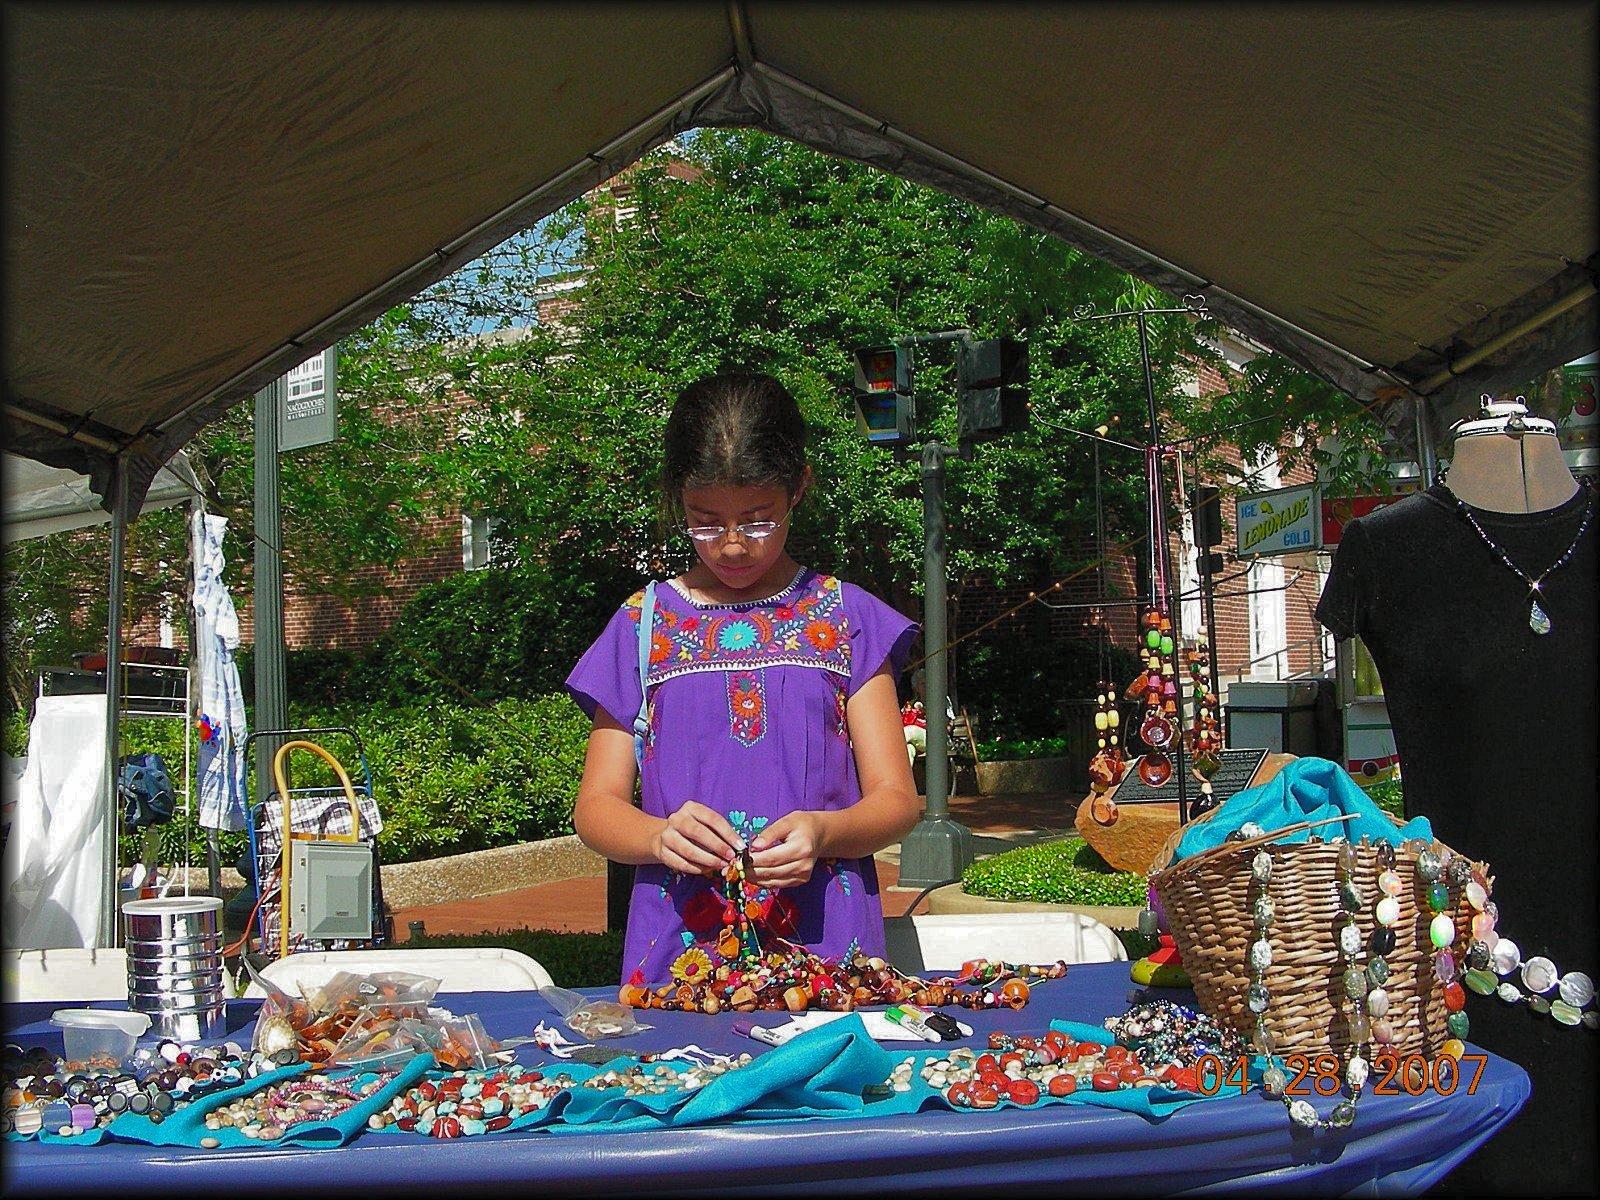 Counting Beads at the Multicultural Festival in Historic Nacogdoches